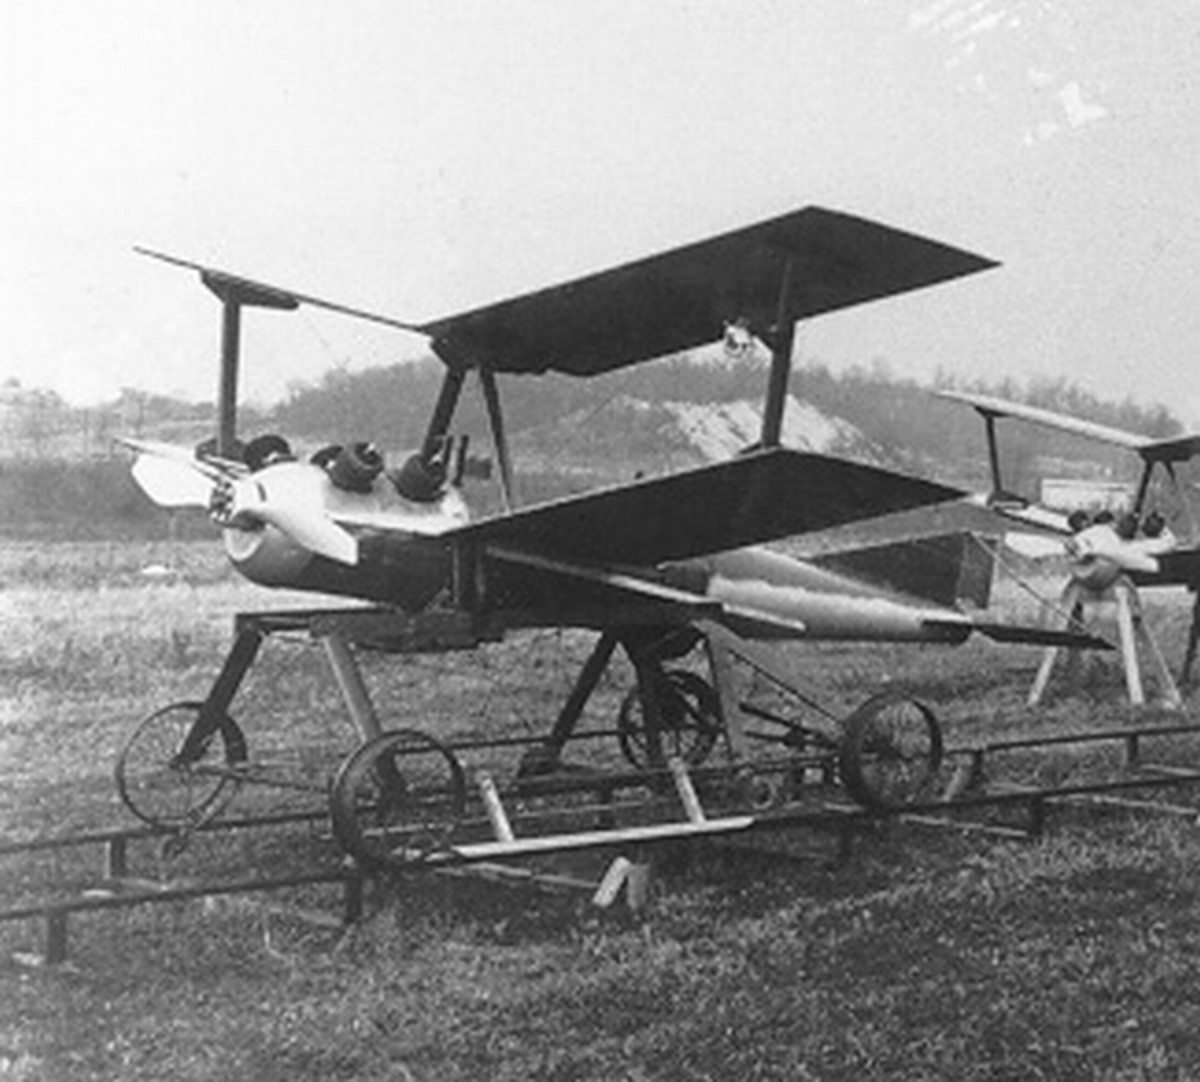 World War One: Kettering Bug, considered to be the first cruise missile.